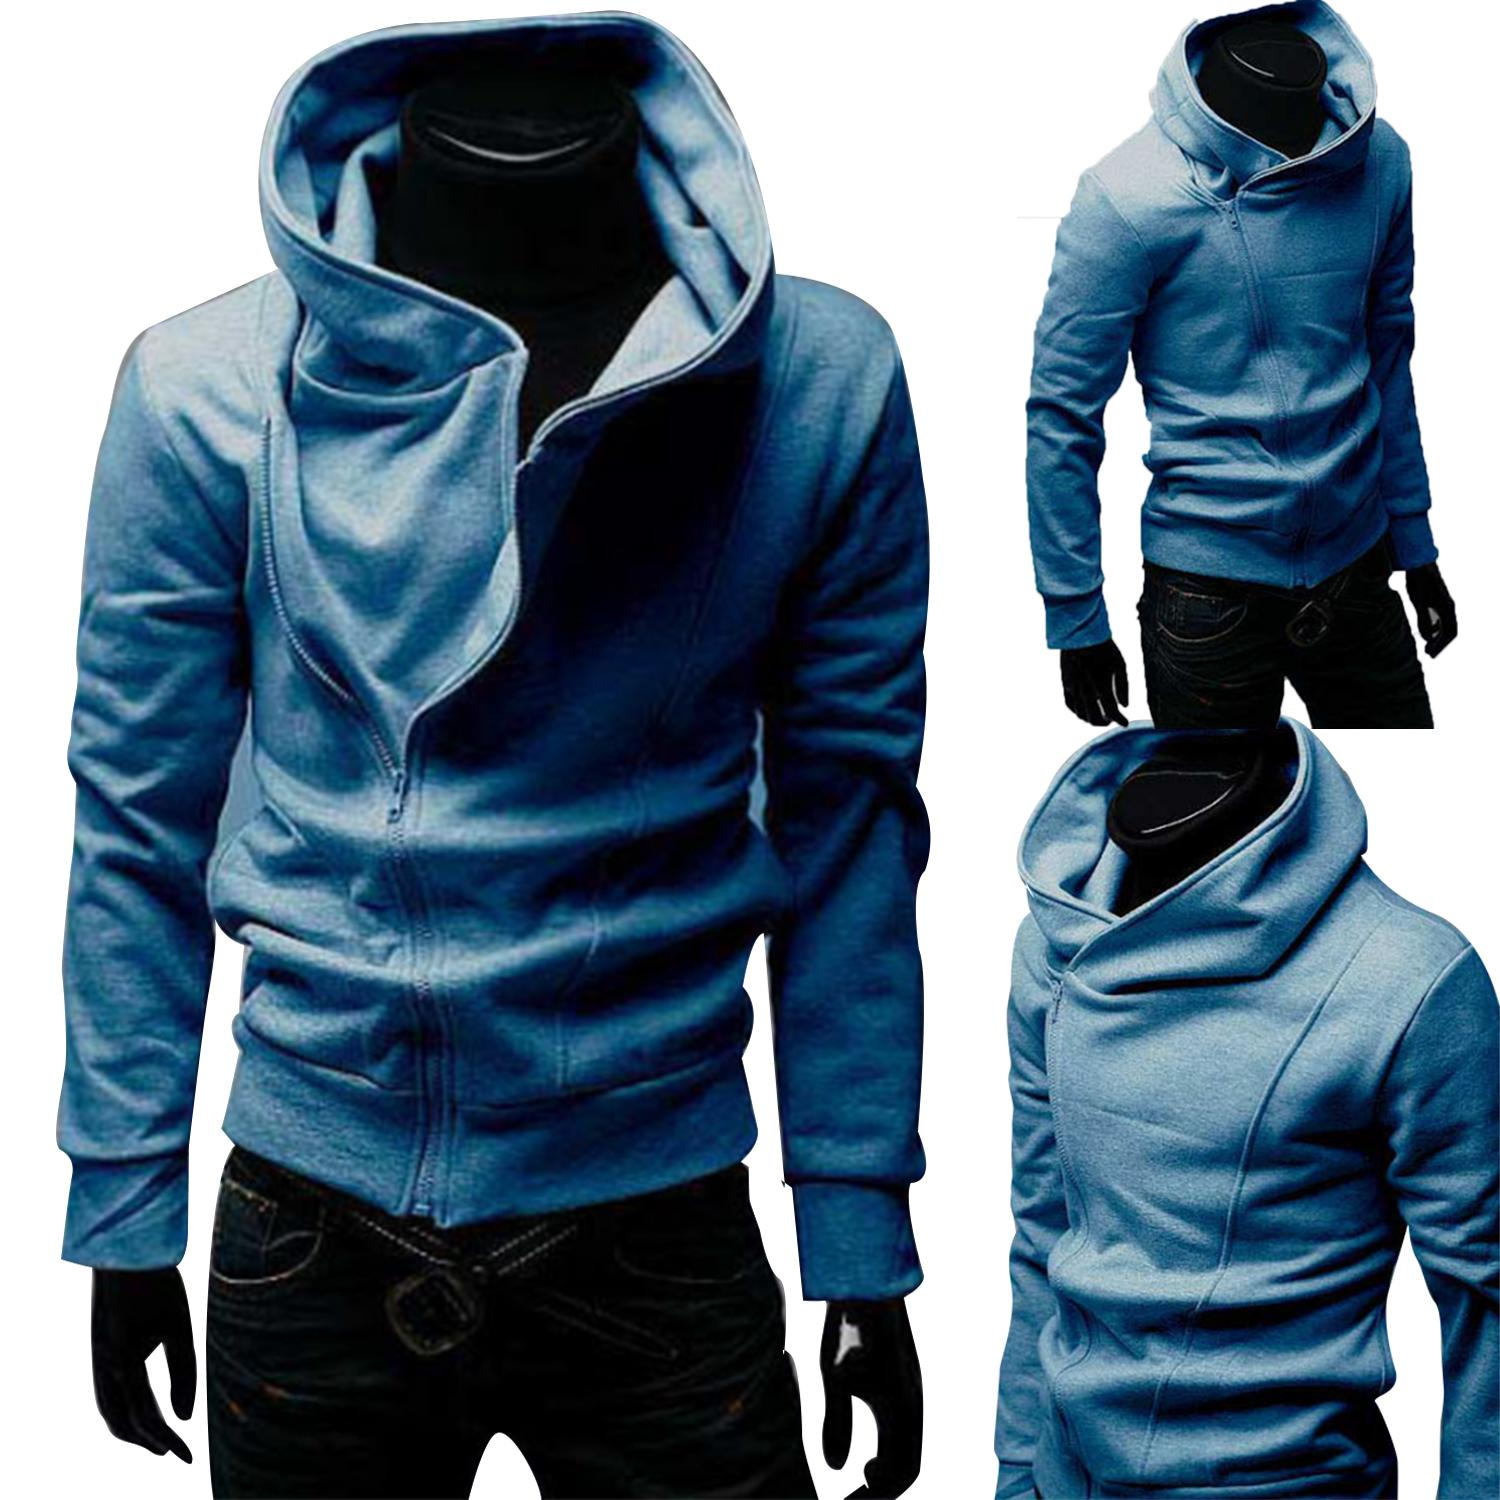 Slim Fit Hooded Jacket Slim Fit Zipped Jacket Zip Hooded Jacket Men Zipped Jacket Zip Up Hoodie For Men Zipper Hooded Hoodie Zip Up Hoodie For Men Assassins Creed Cosplay Hoodie Slim Fit Casual Coat Hoodies Coat Sports Suit Casual Fashion Mens Clothing By Novo Cosmetics.